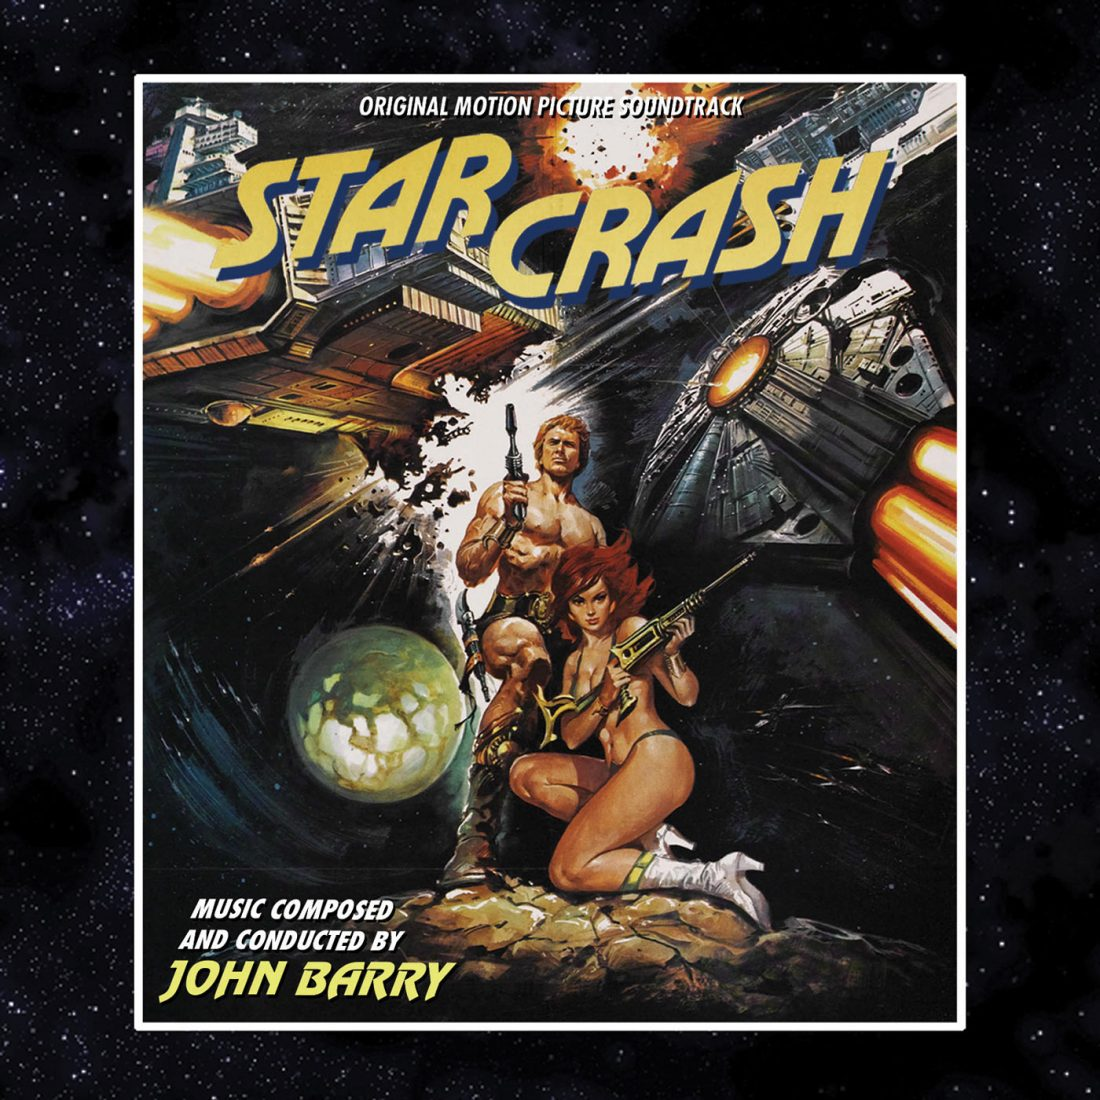 Starcrash Original Motion Picture Soundtrack Album – Music by John Barry